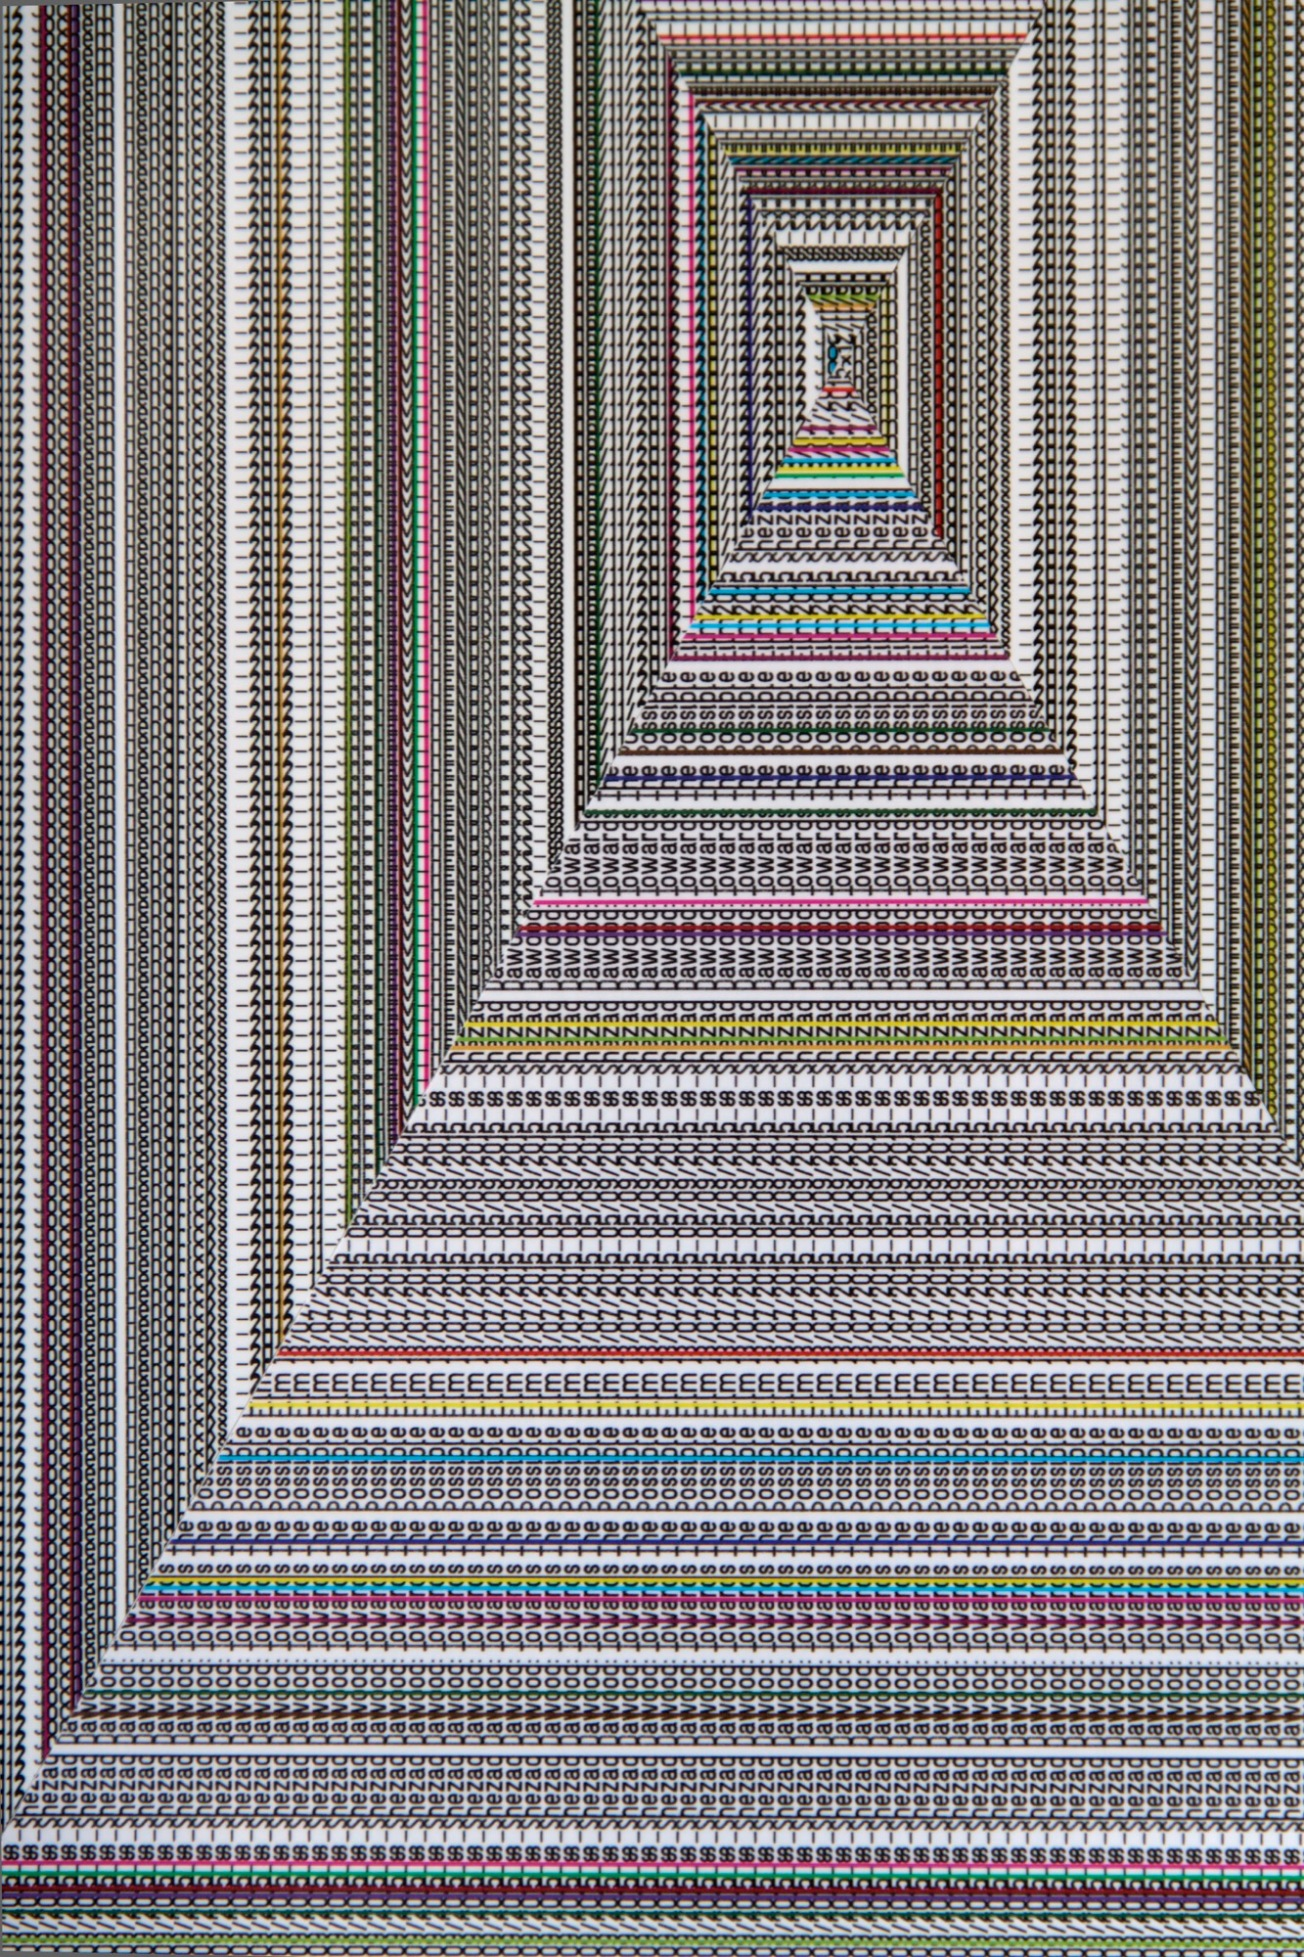 Walter van Rijn, Labyrinth_WD3, 2019, Collage with ink, digital print, vinyl, aluminium panel 800 x 600 x20 mm, Font Being Human. Text with 2012_11_JOCHEM_HENDRICKS_Wallpaper_2